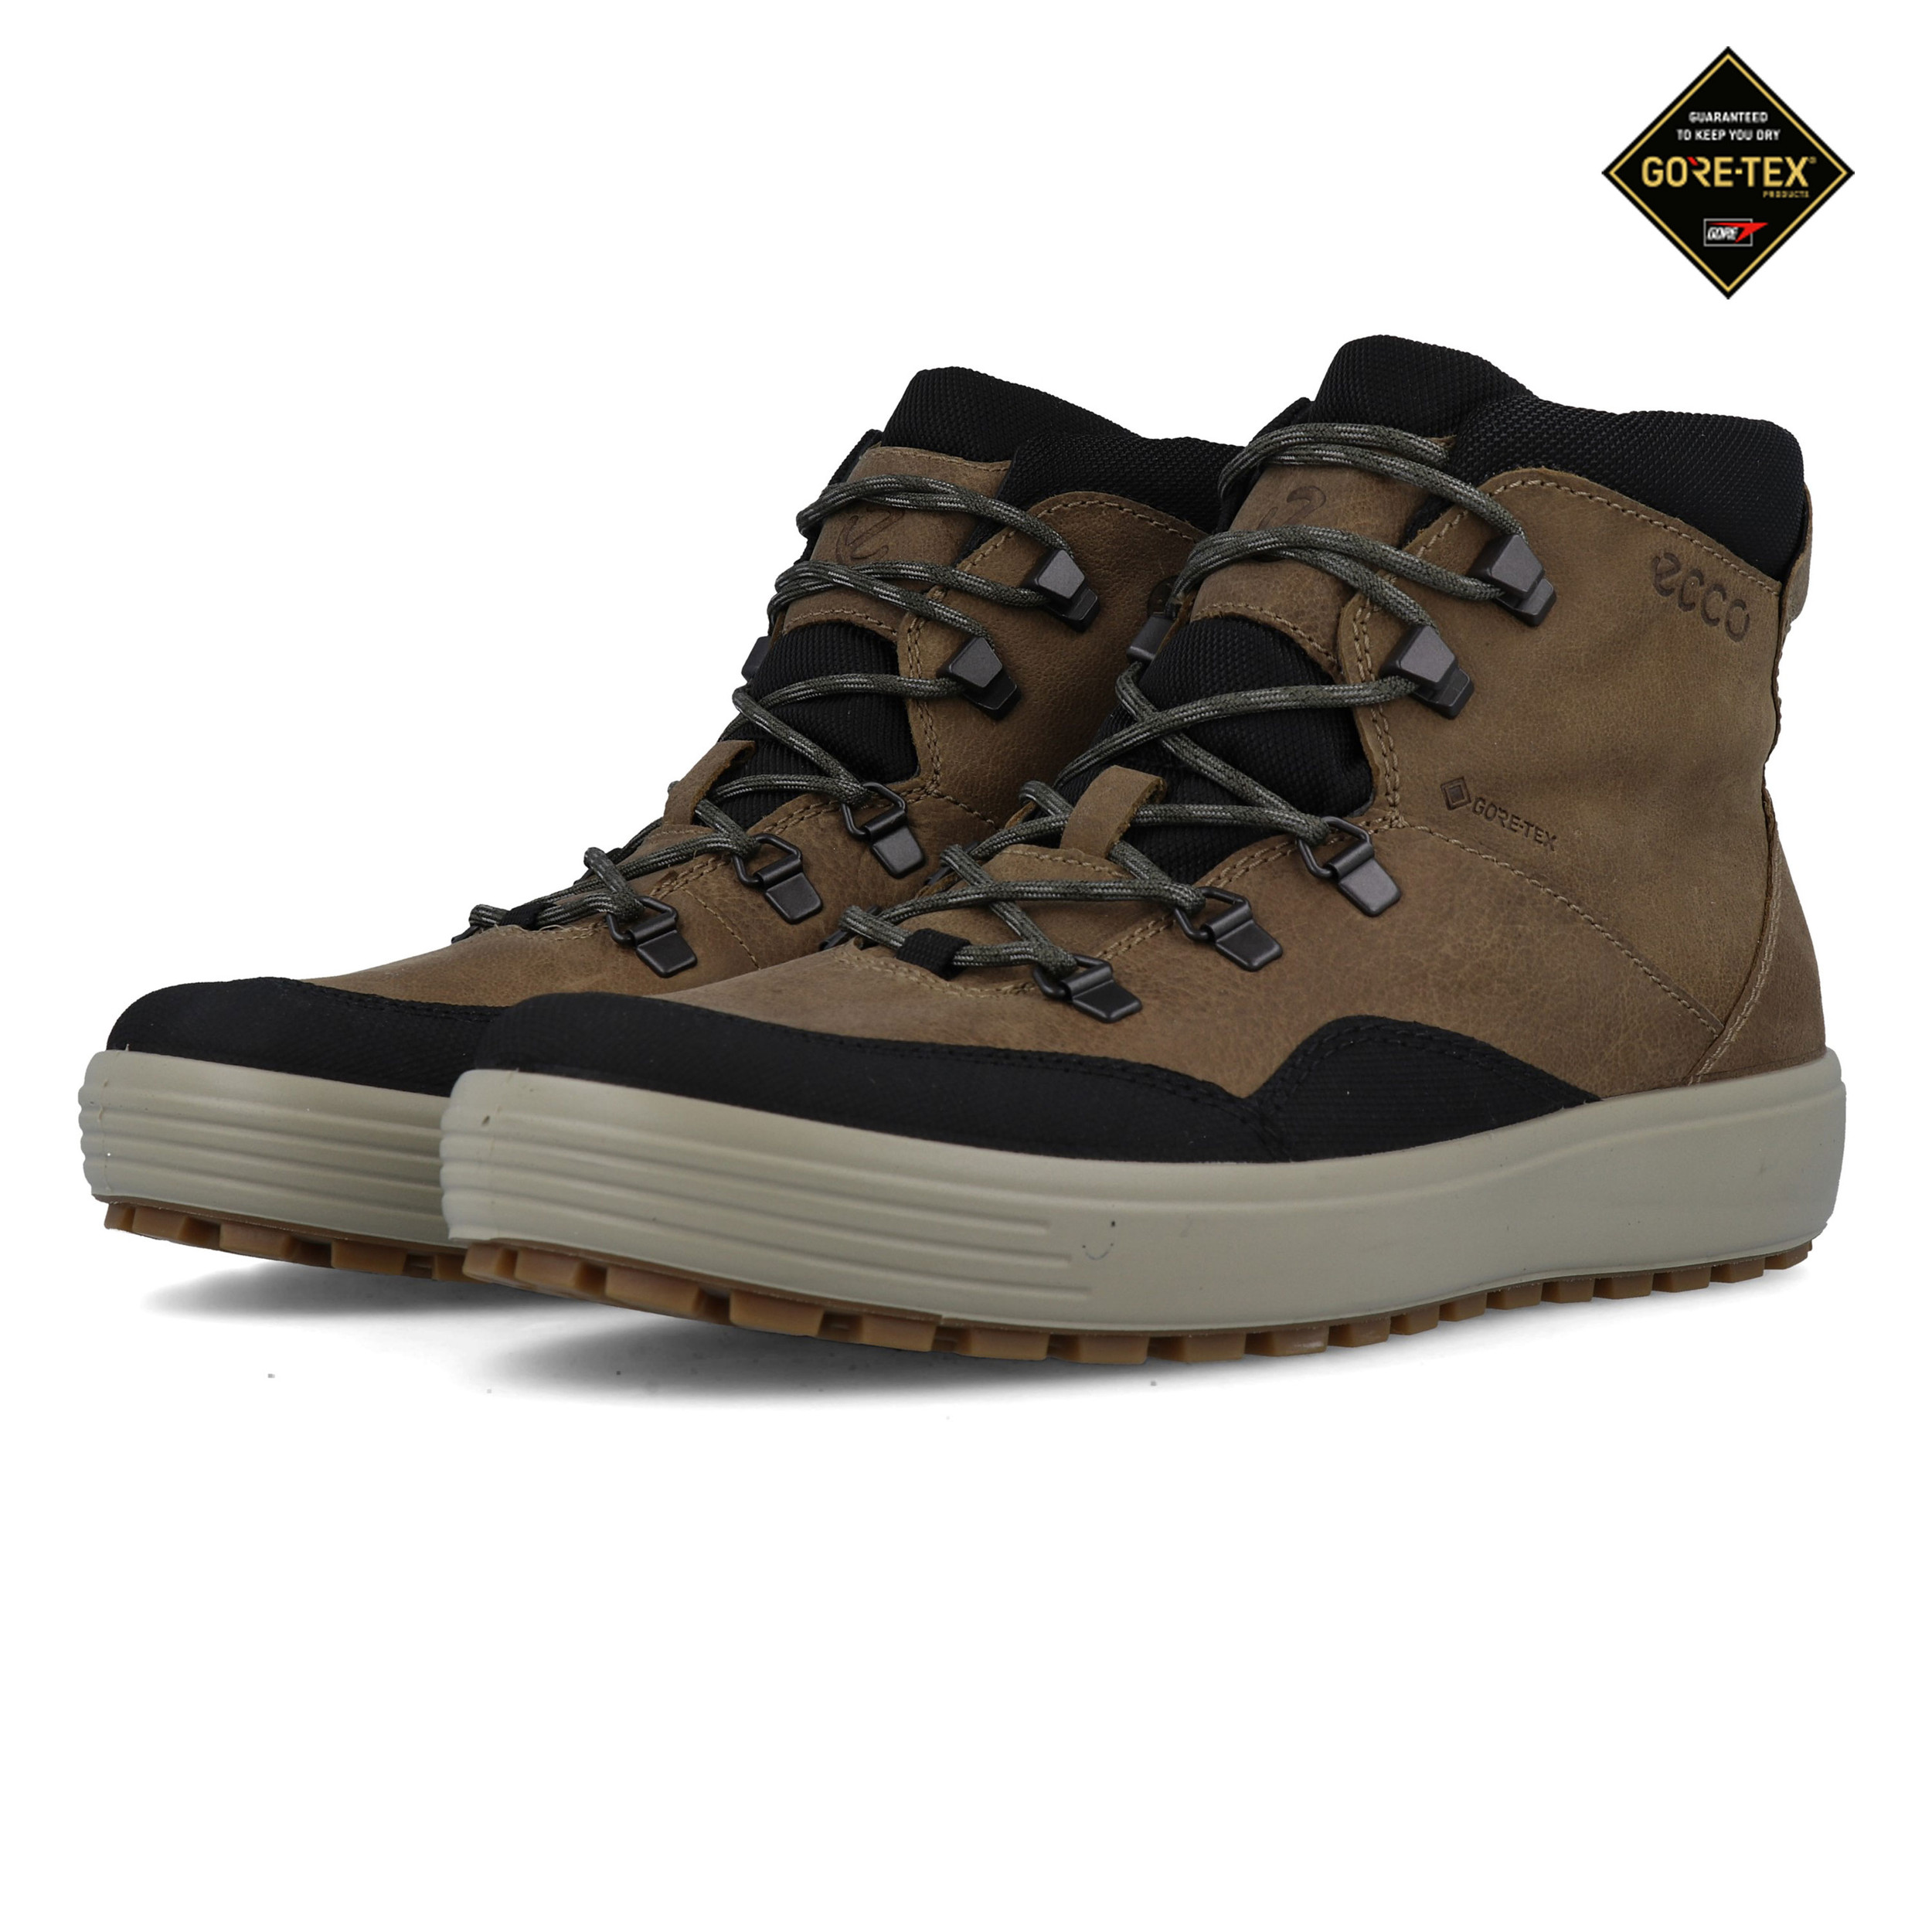 Ecco Mens Soft 7 Tred GORE-TEX Walking Boots Brown Sports Waterproof